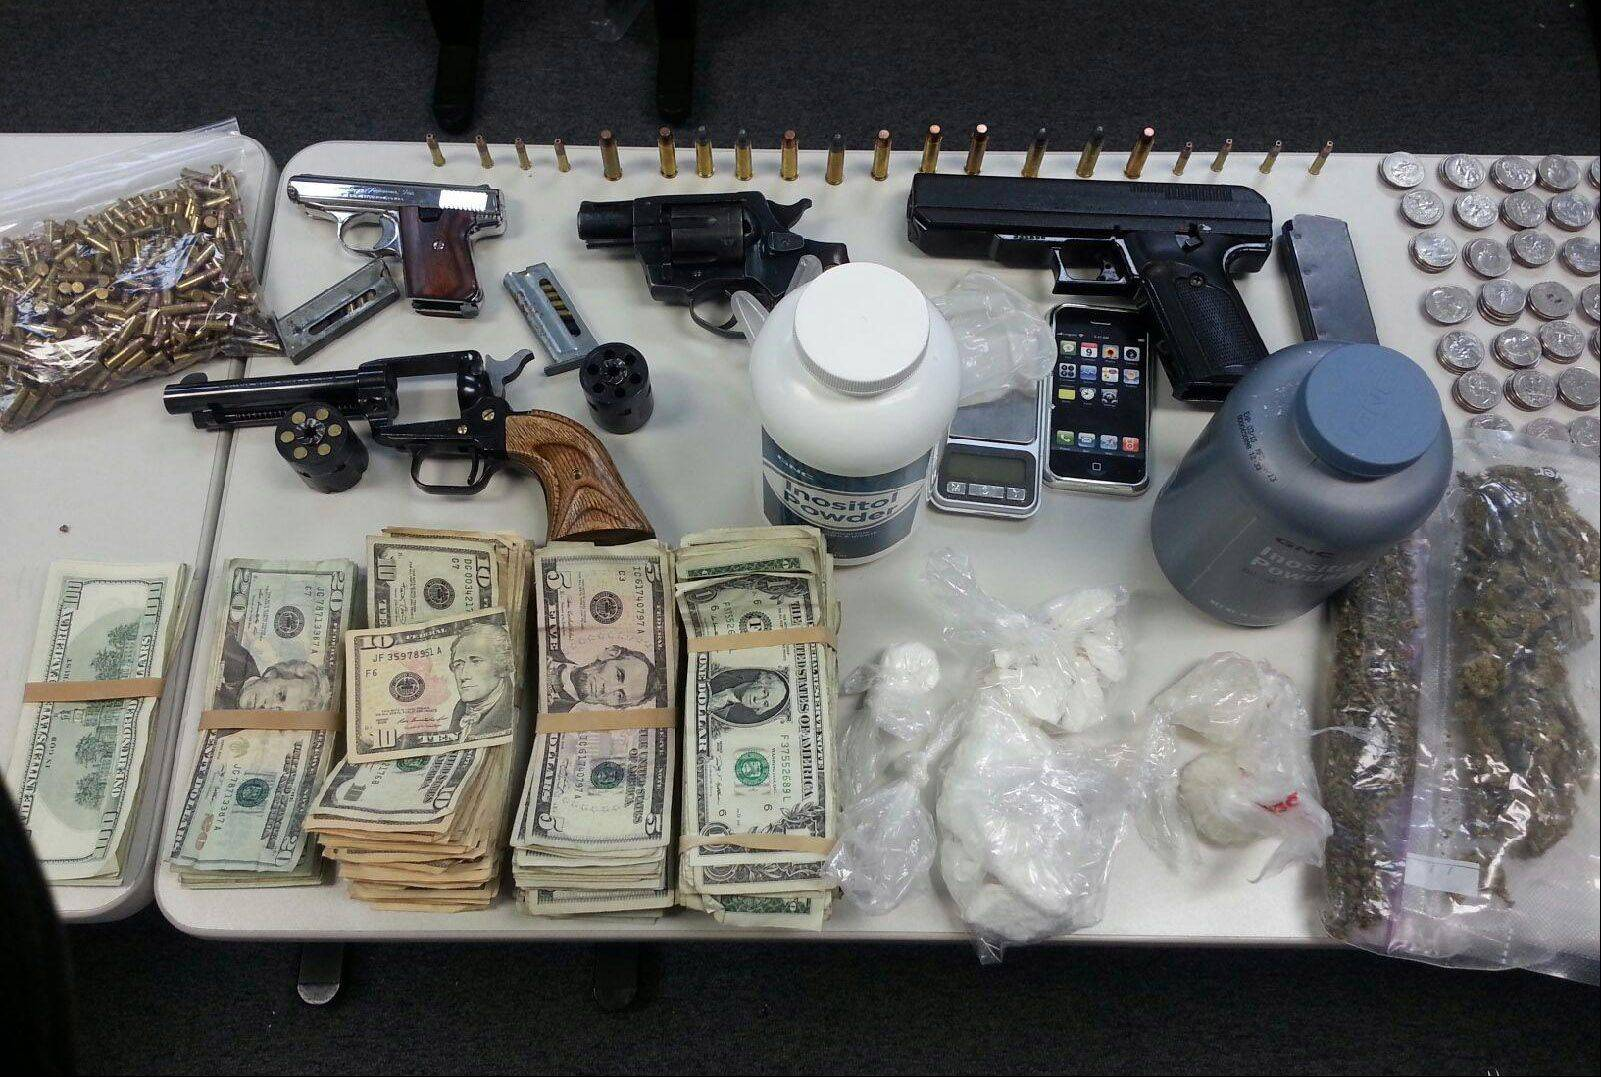 Drugs and weapon are among the items seized by Round Lake Park Police during the arrest of a McHenry man, who was initially stopped for littering.